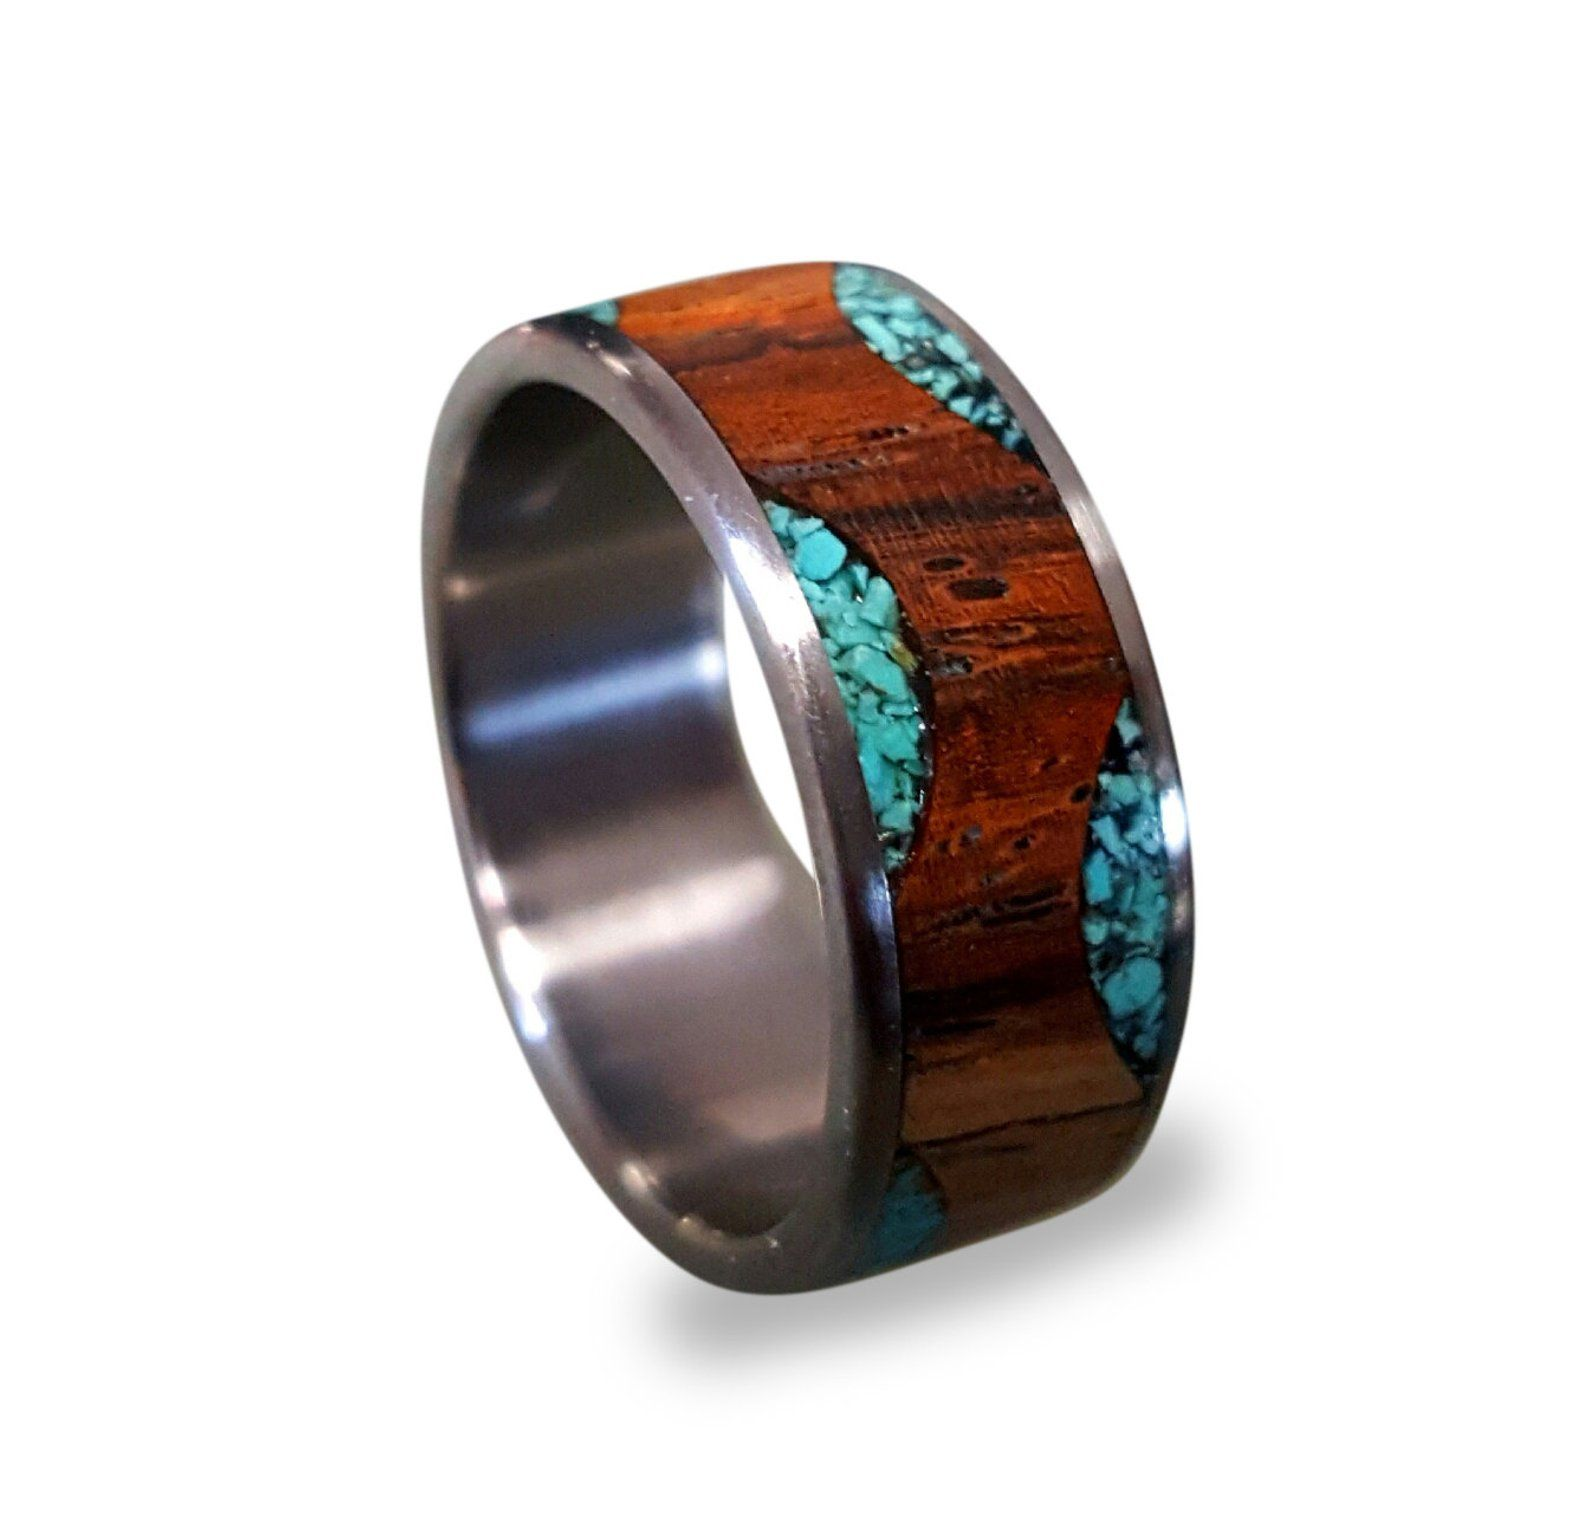 Mens Wedding Band Titanium Ring with Cocobolo Wood and